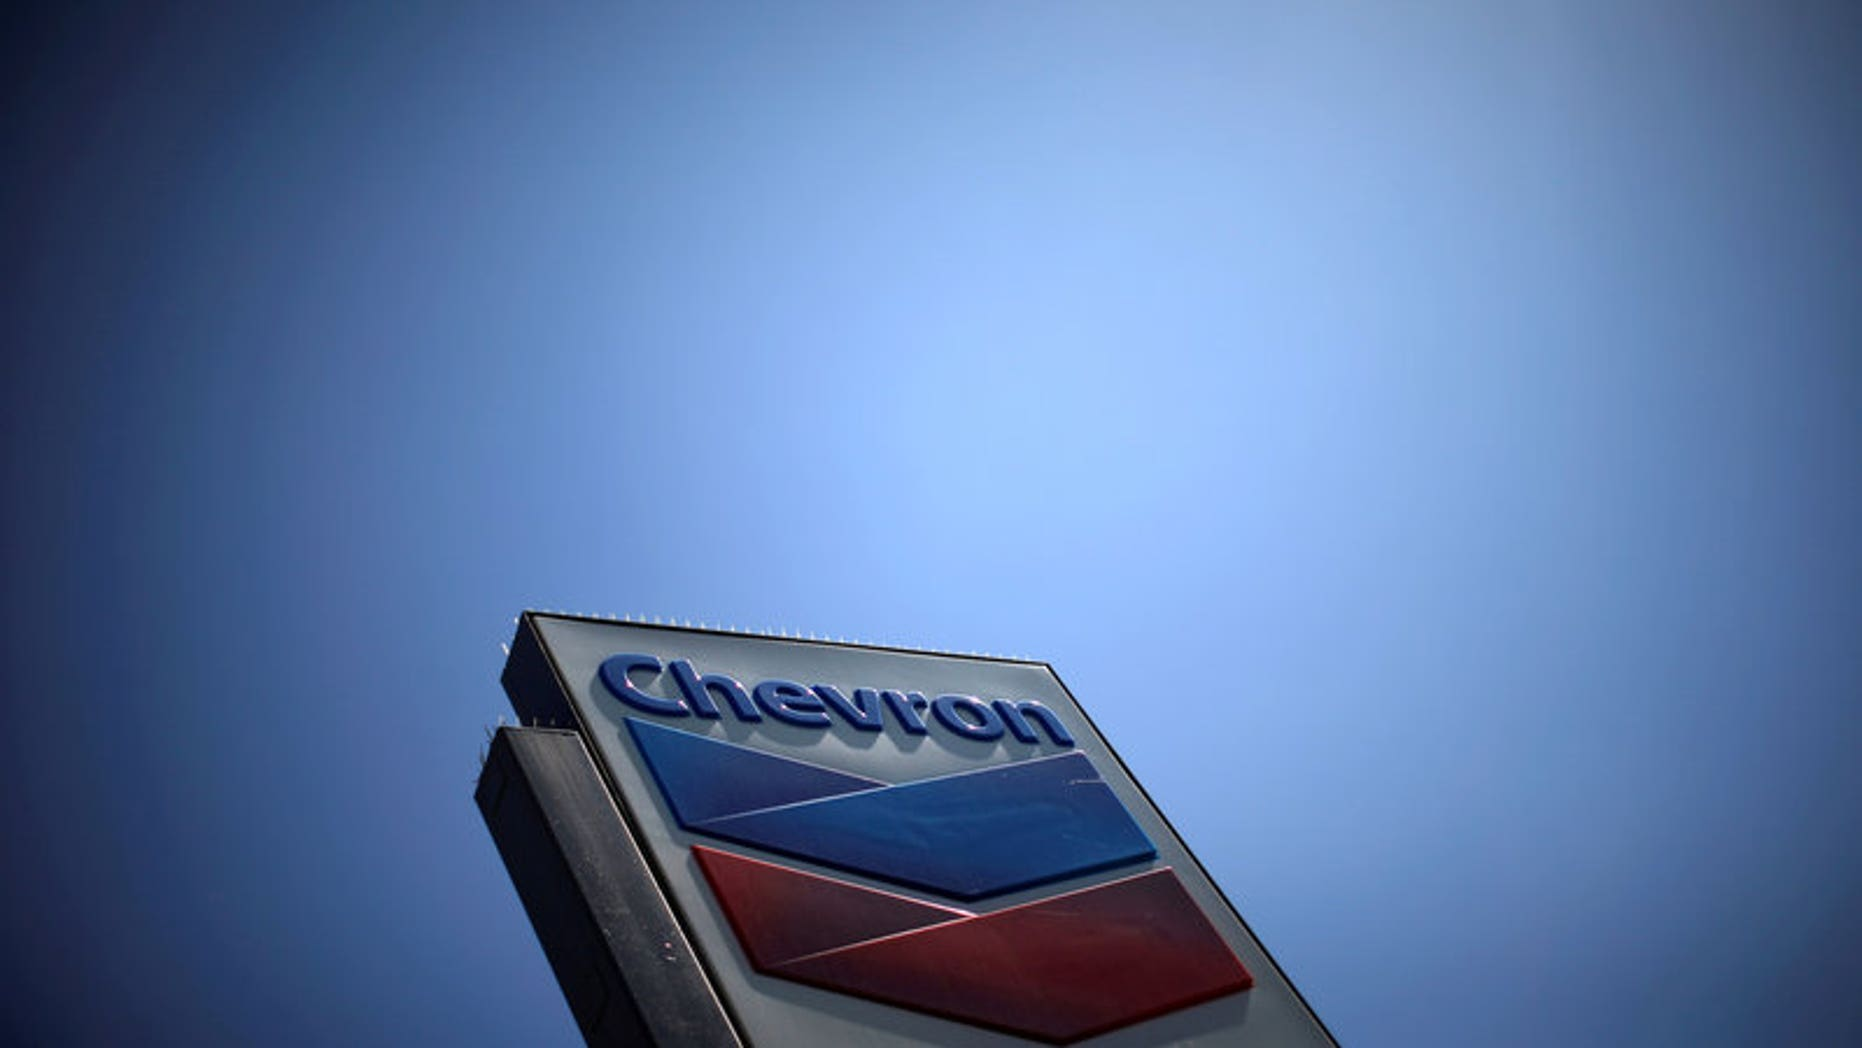 The logo of Chevron (CVX) is seen in Los Angeles, California, United States, April 12, 2016.